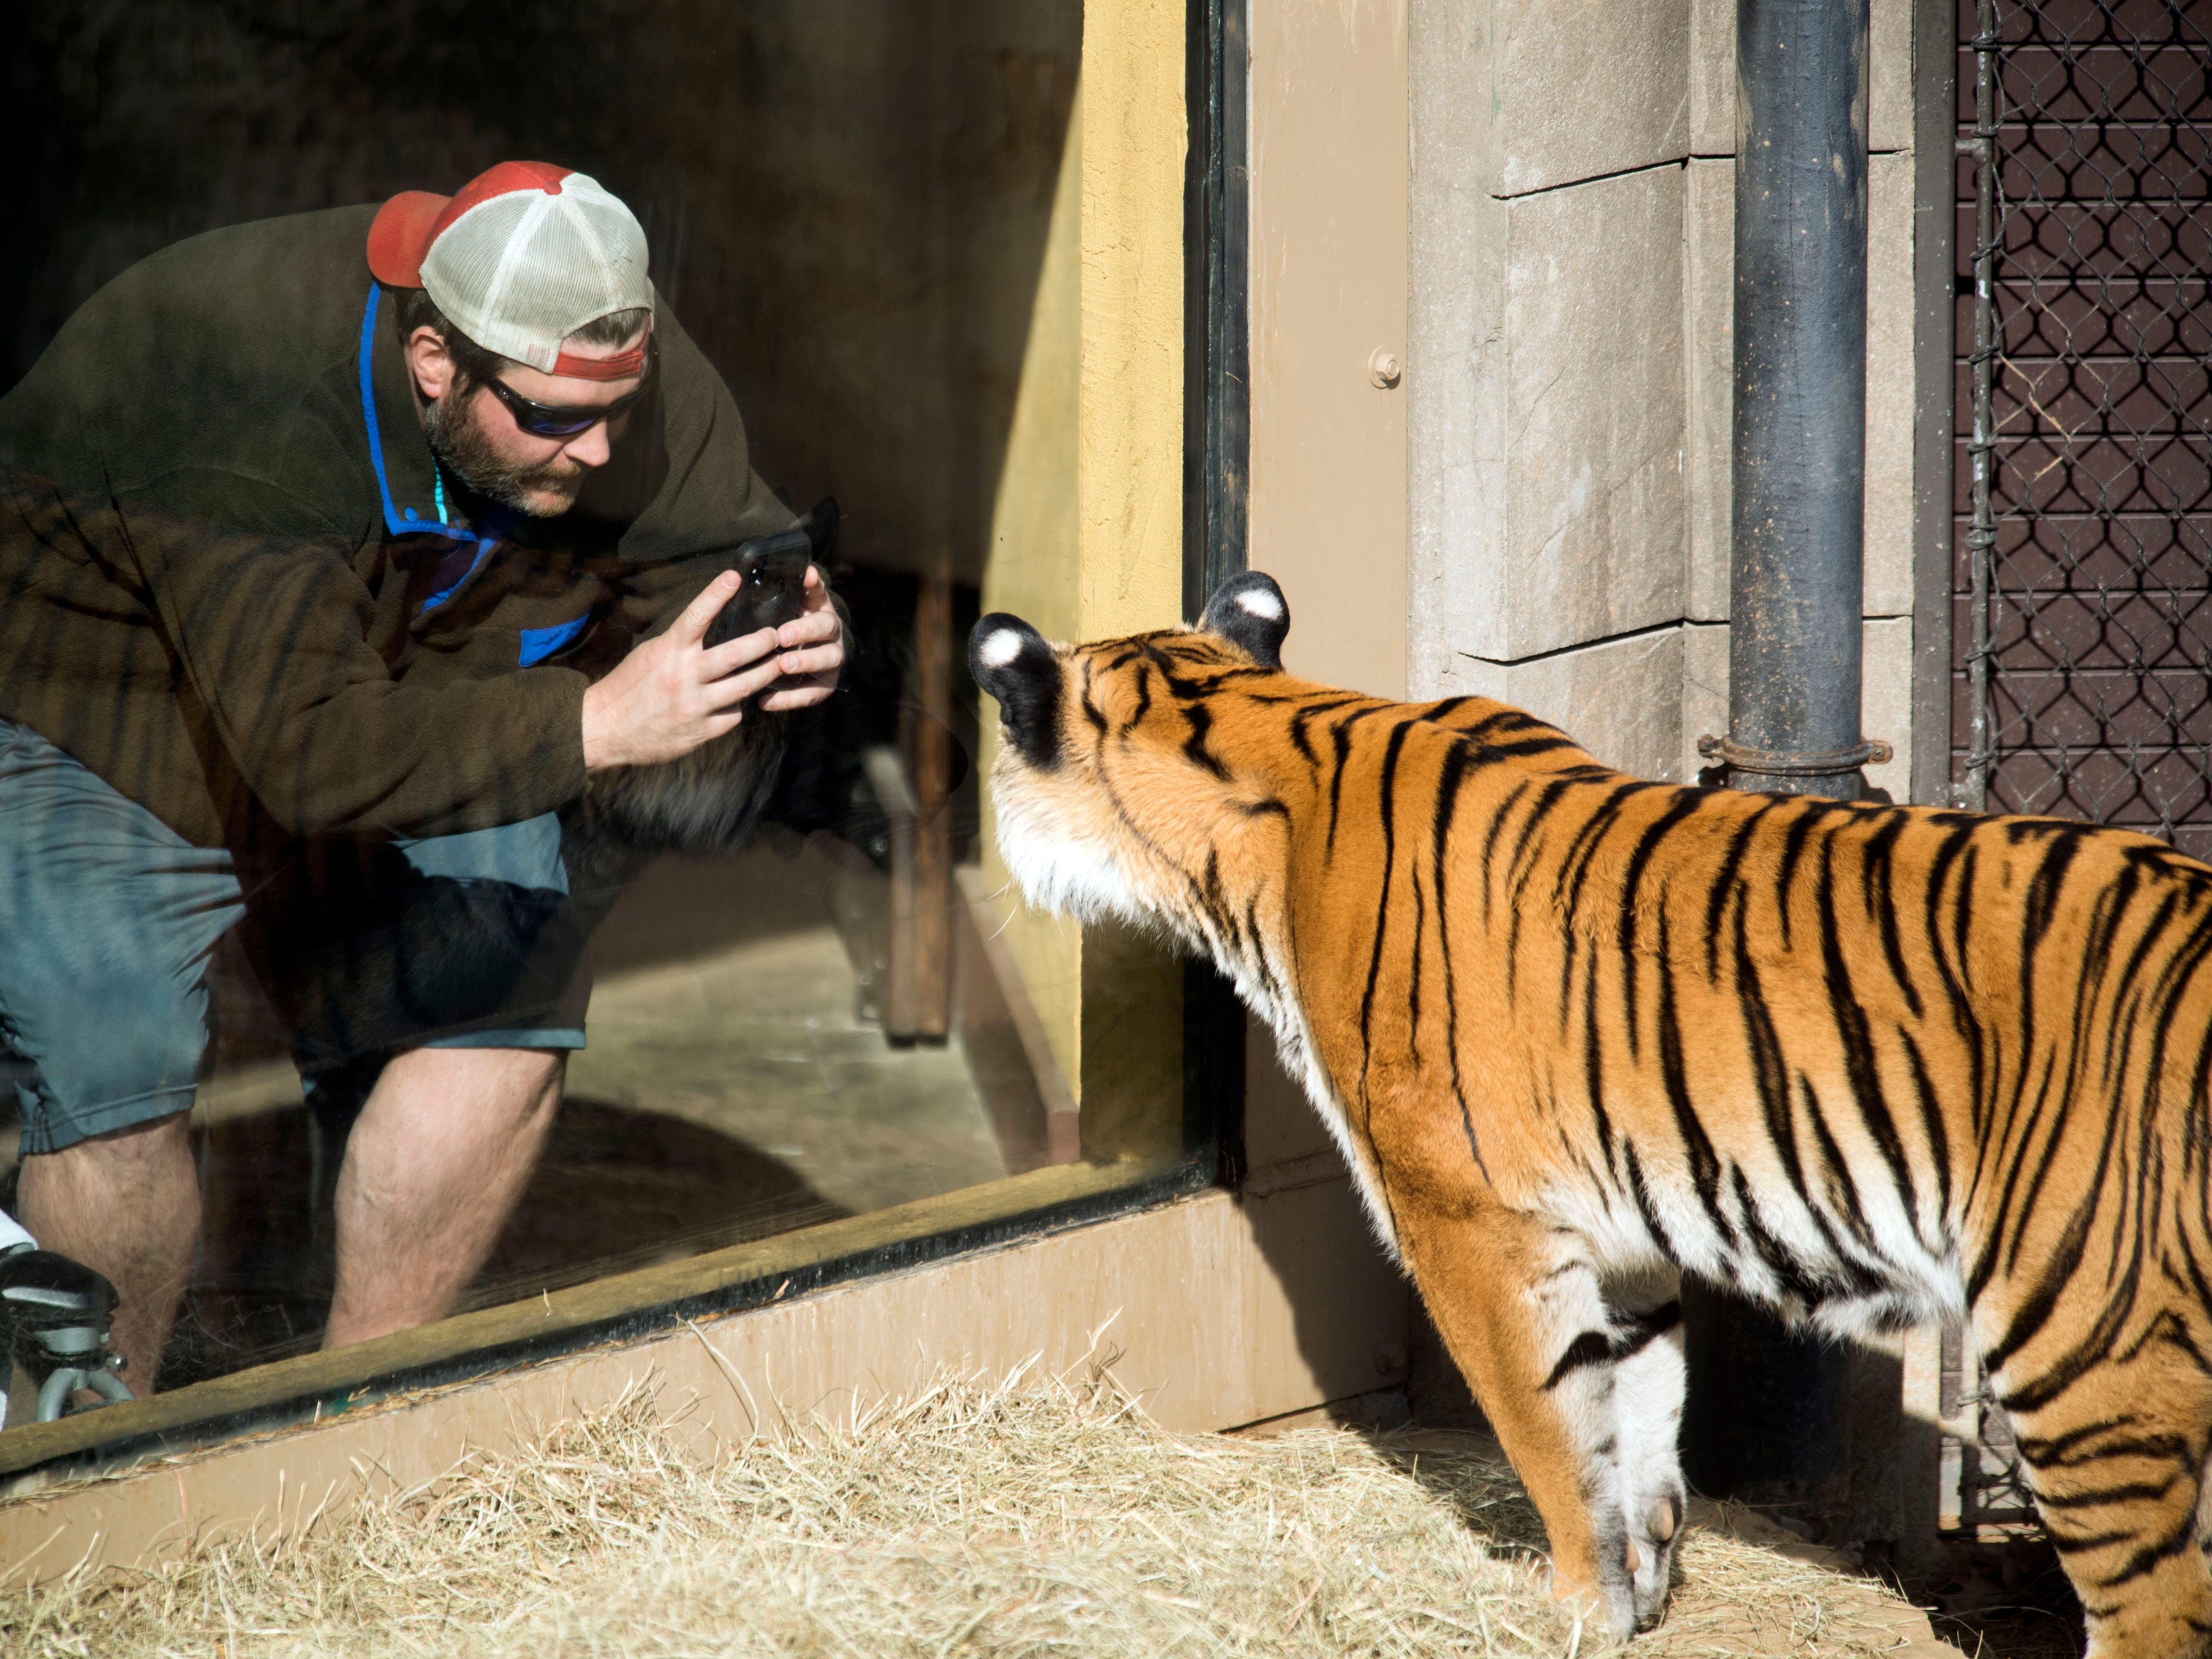 Arya, a Malayan tiger, is photographed at Zoo Knoxville's Tiger Forest habitat on Feb. 3, 2019.